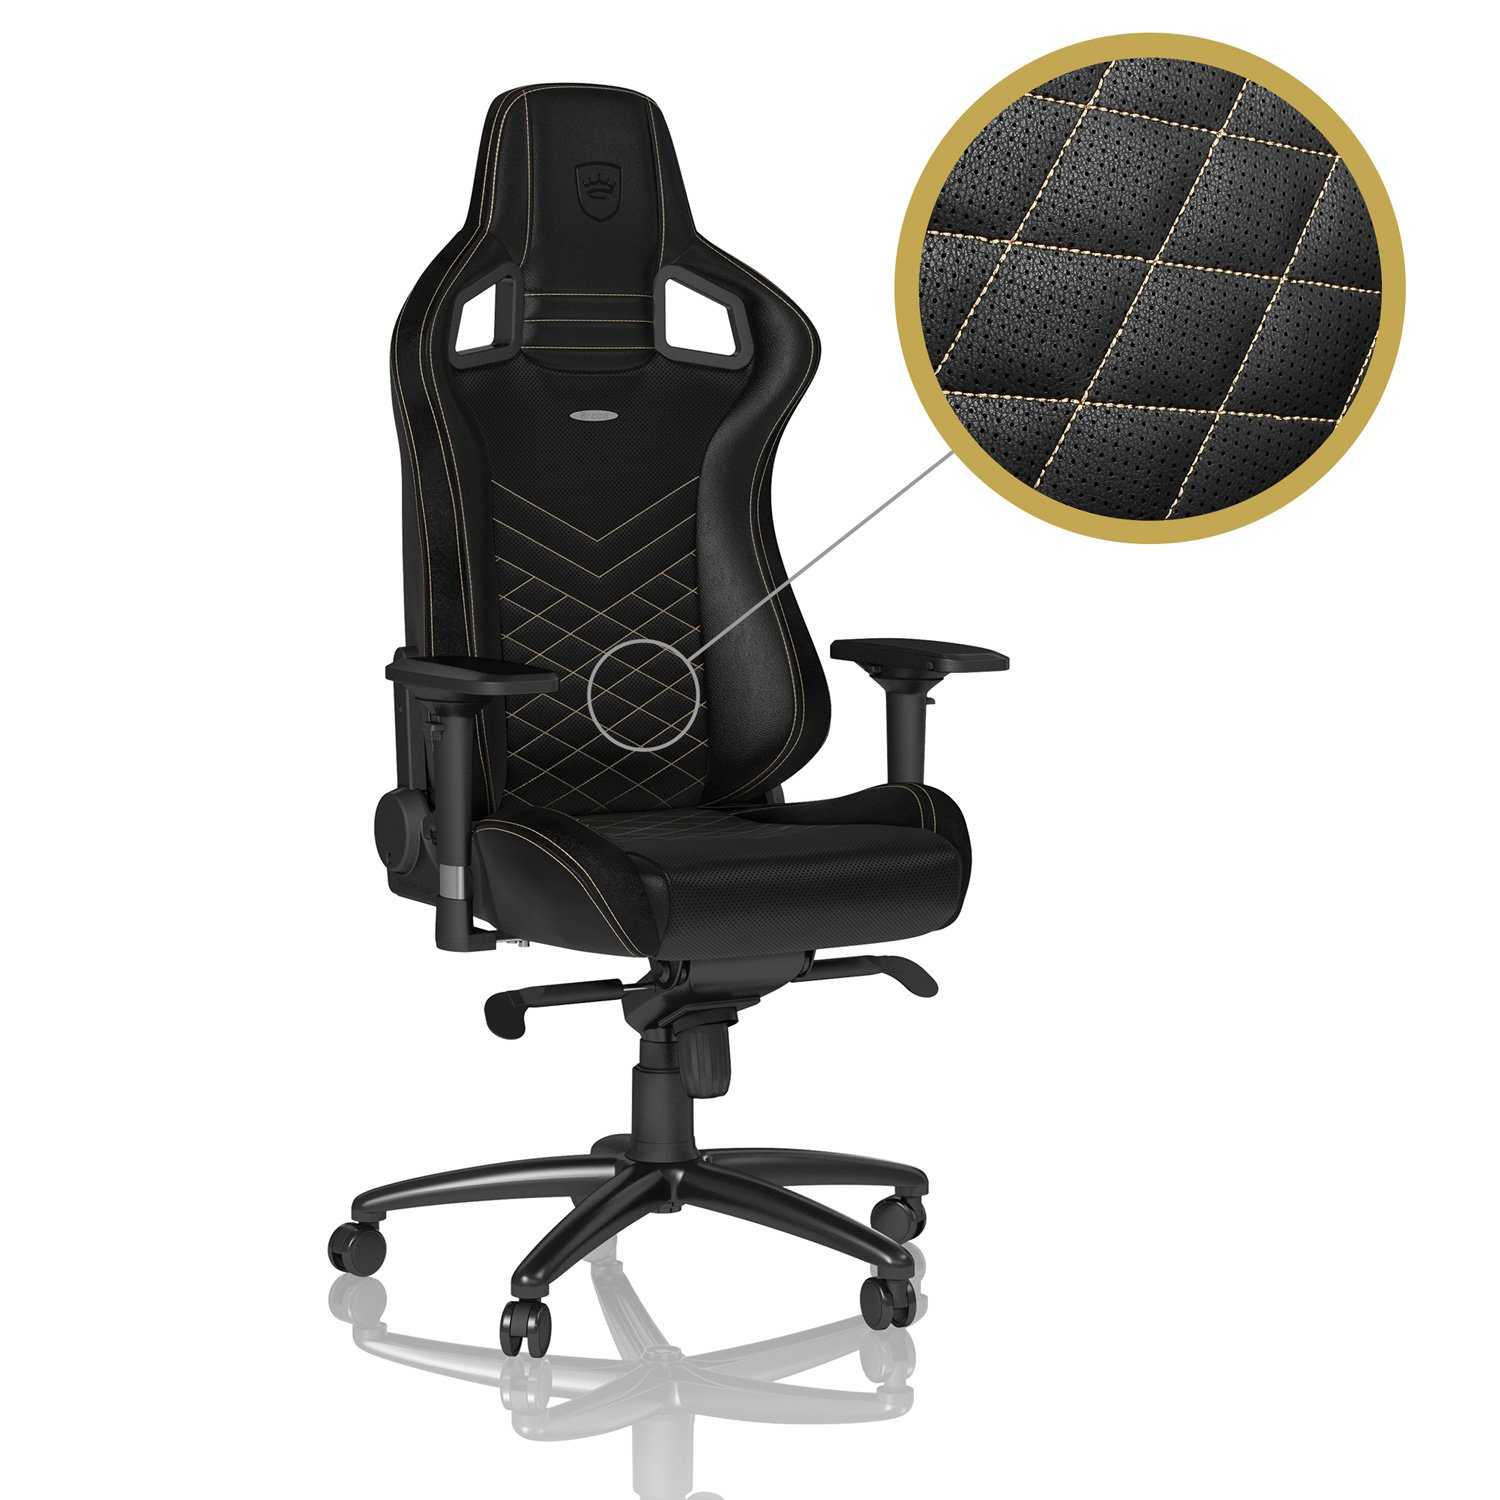 noblechairs EPIC - Black/Gold - Gaming Chair / Office Chair / Desk Chair